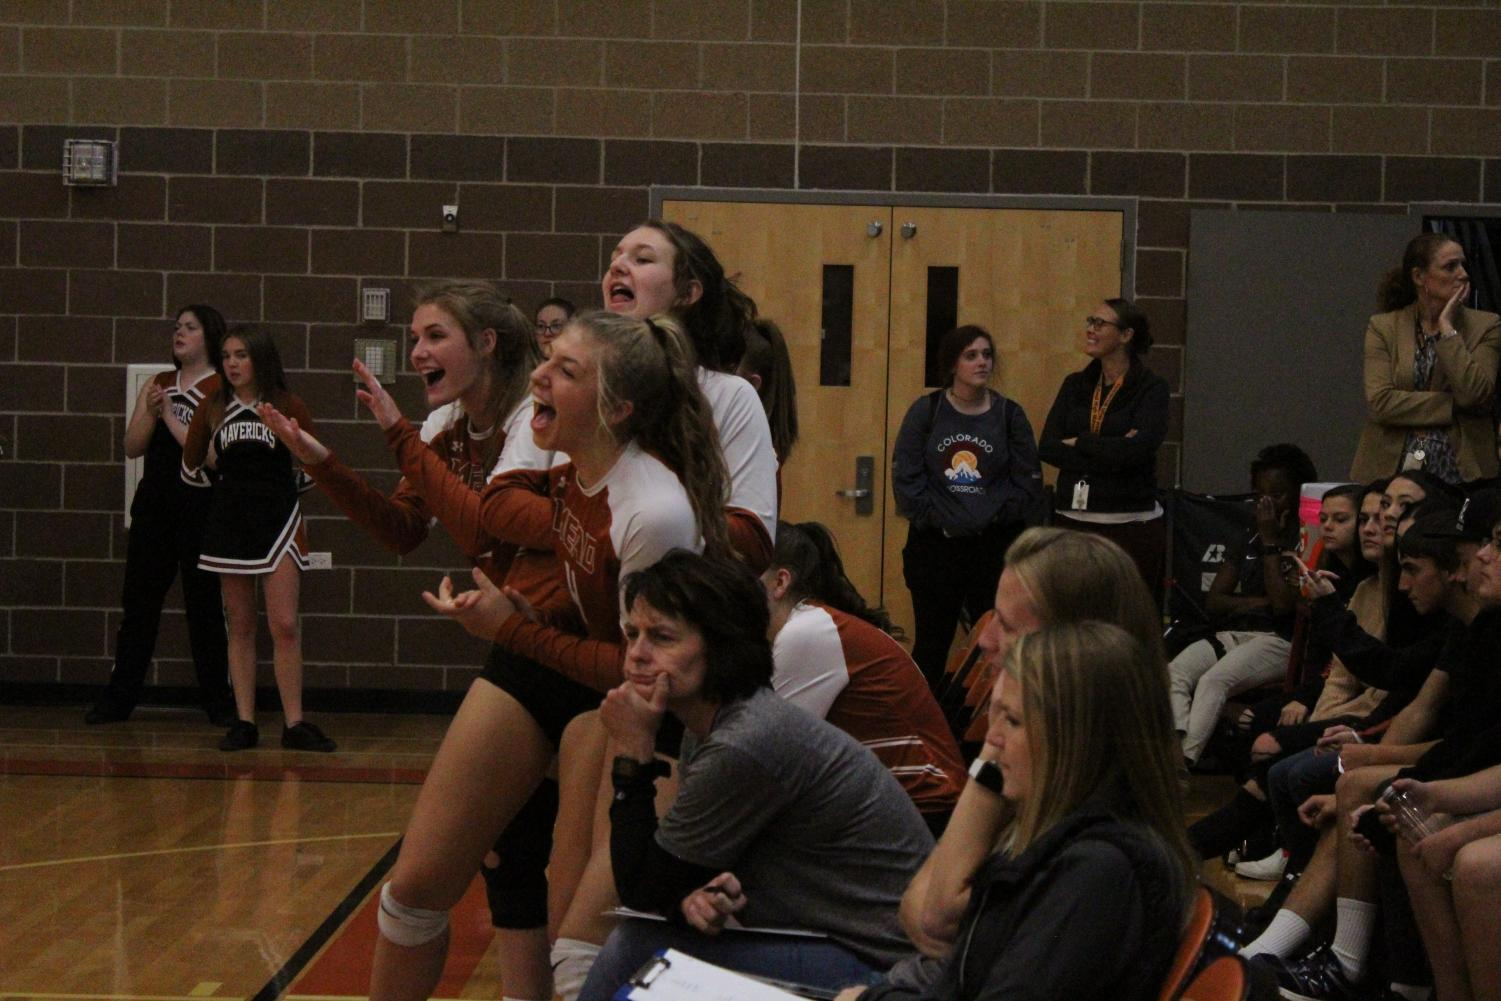 Mead+High+School+hosts+regional+volleyball+tournament